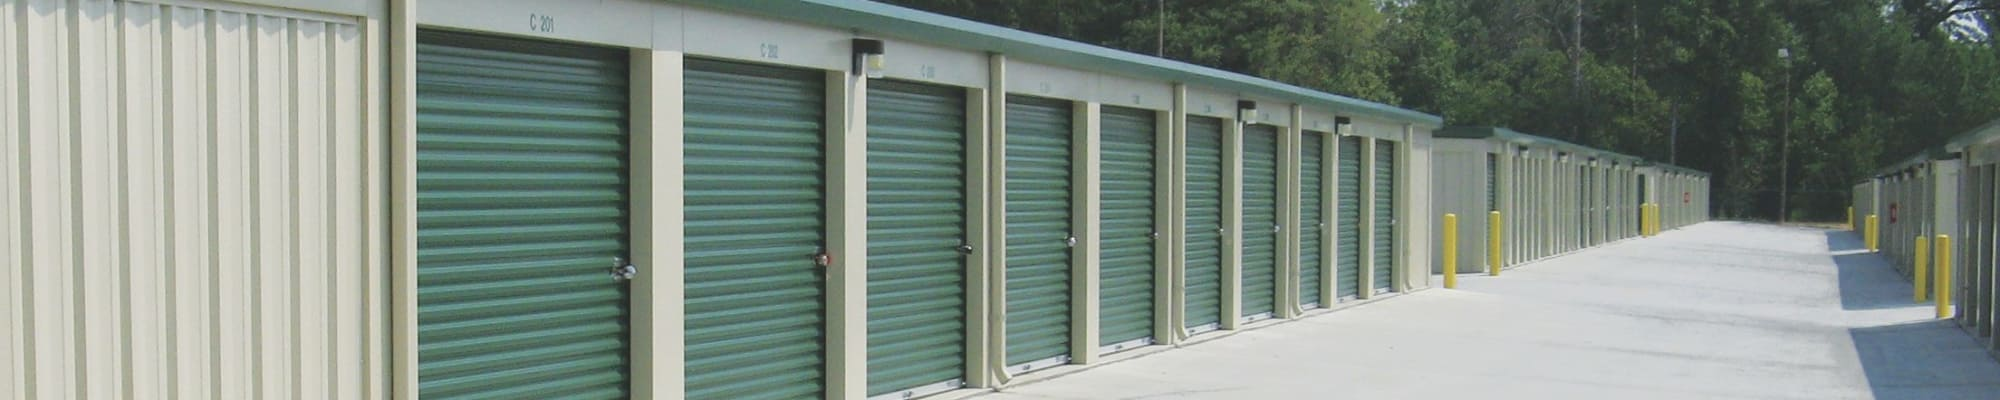 Auto, boat and RV storage at Cardinal Self Storage - East Raleigh